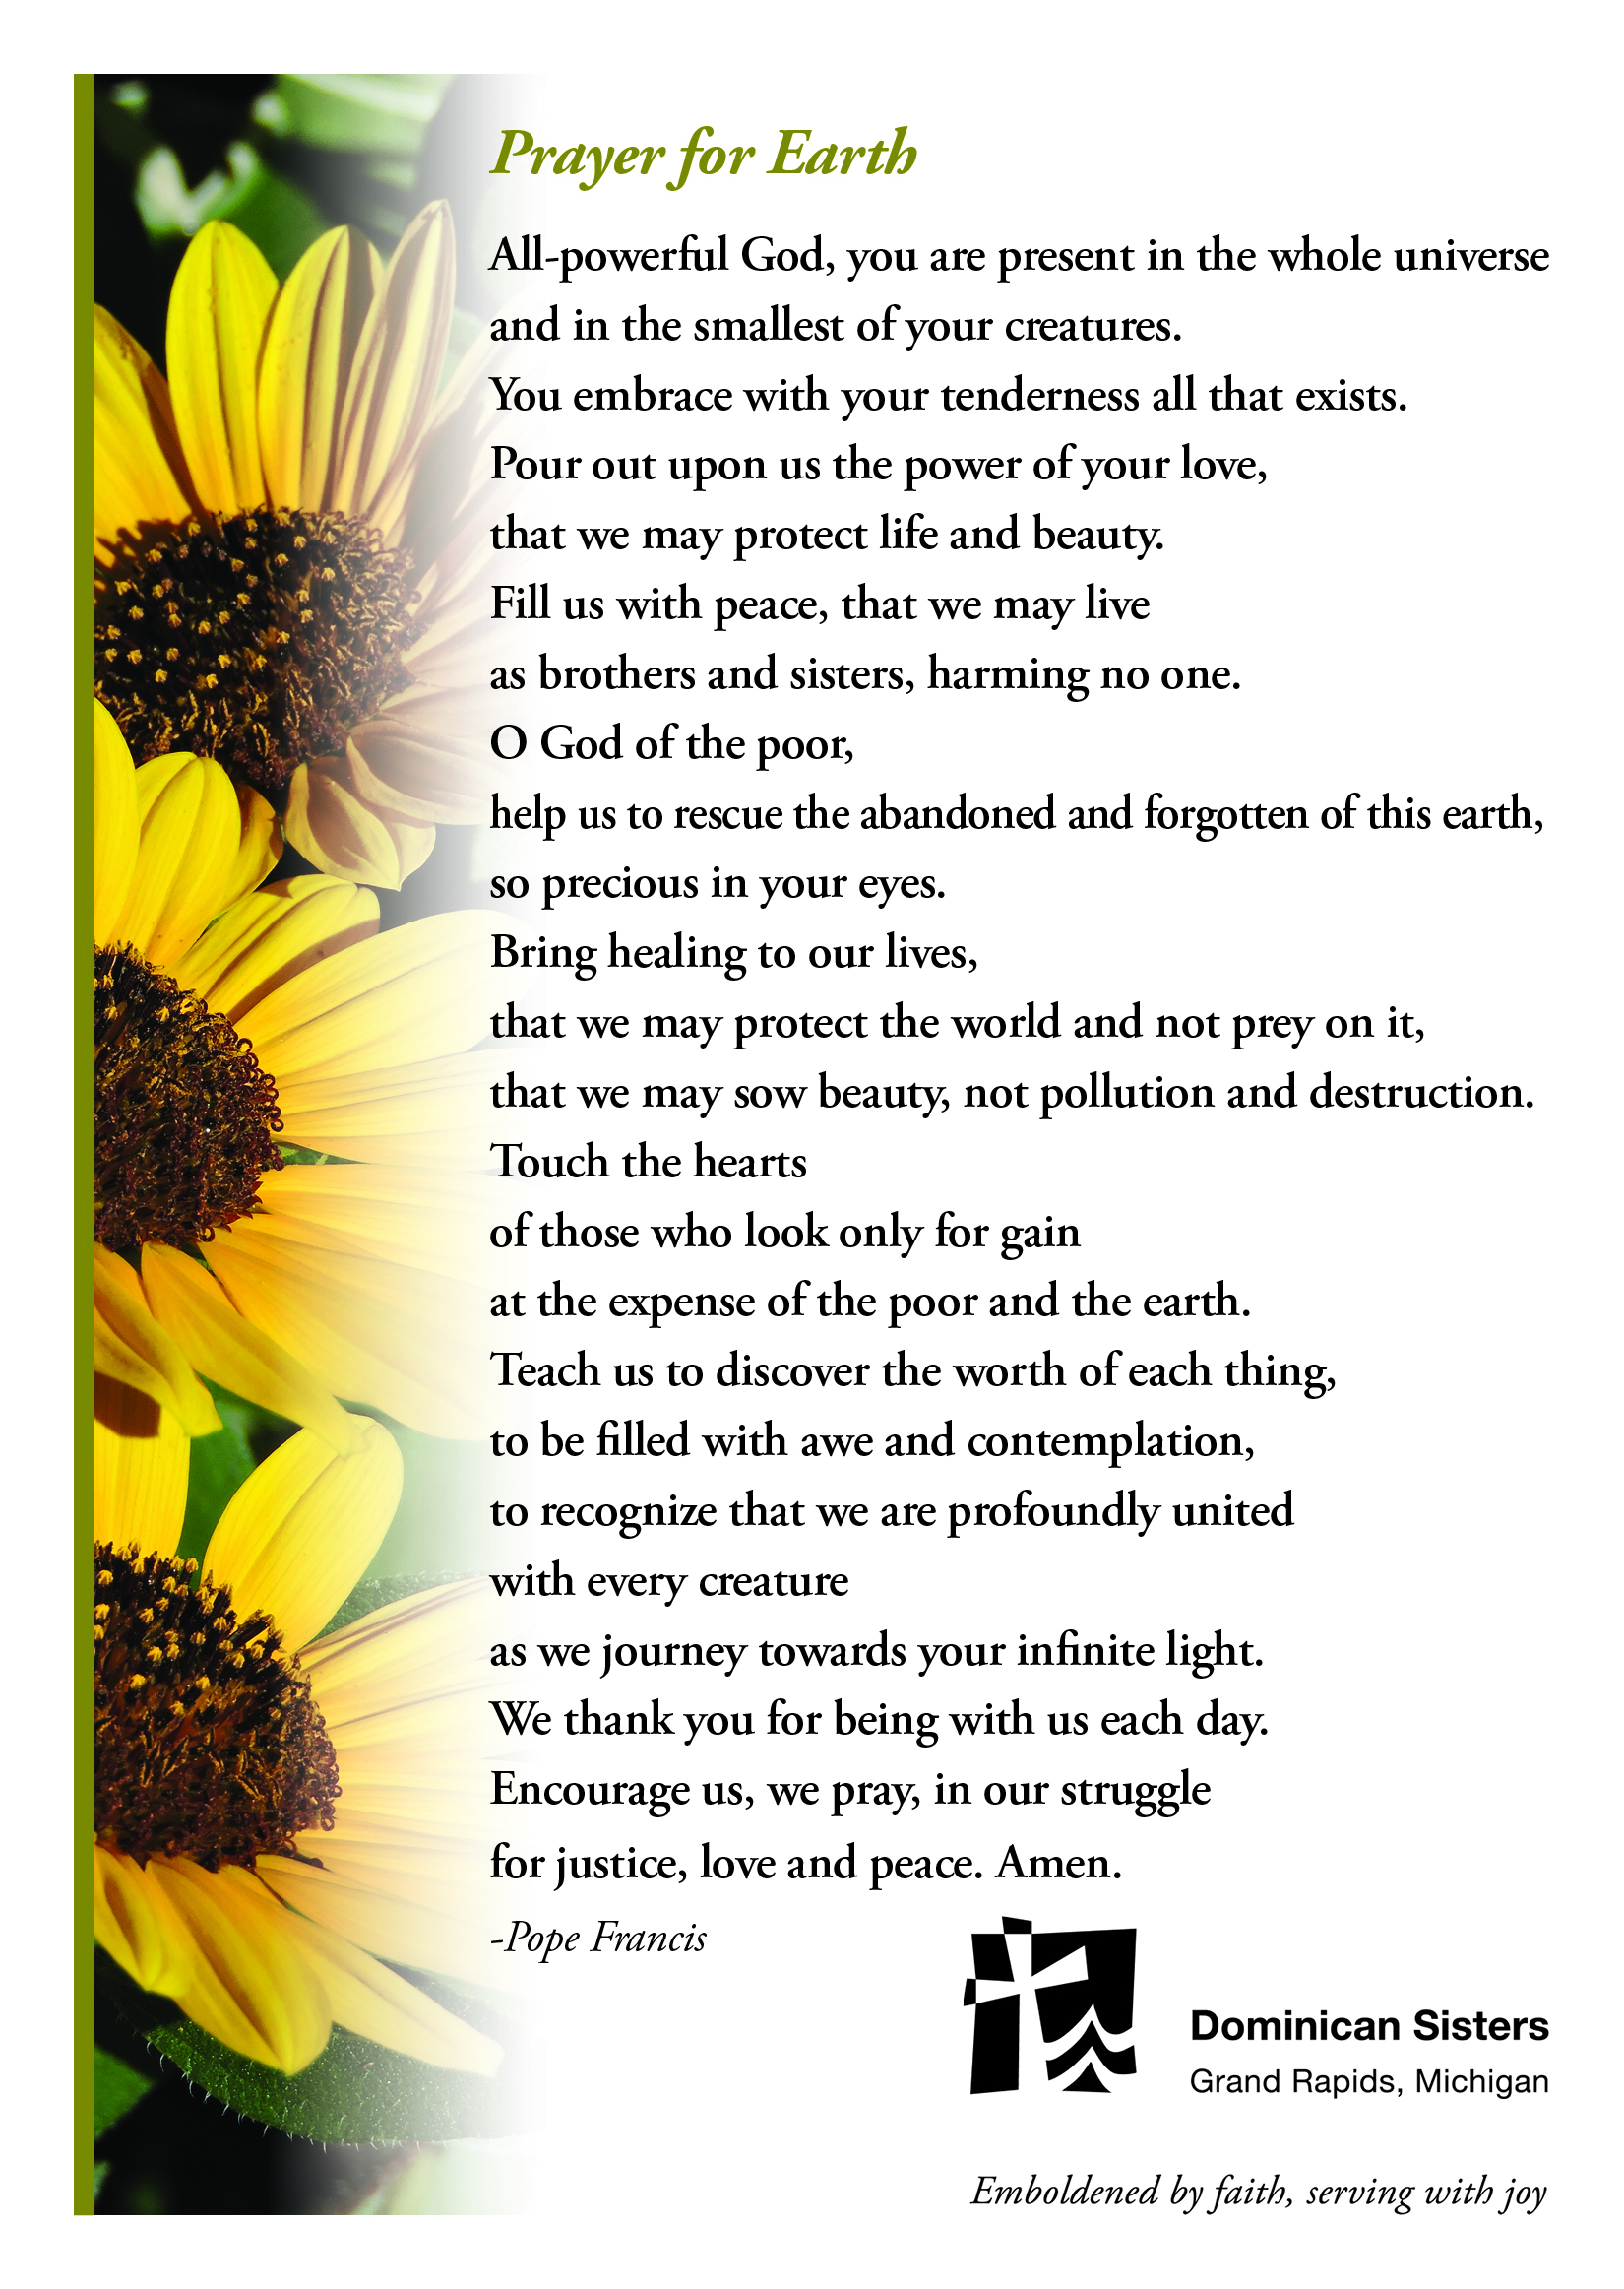 Prayer for Earth Reflection